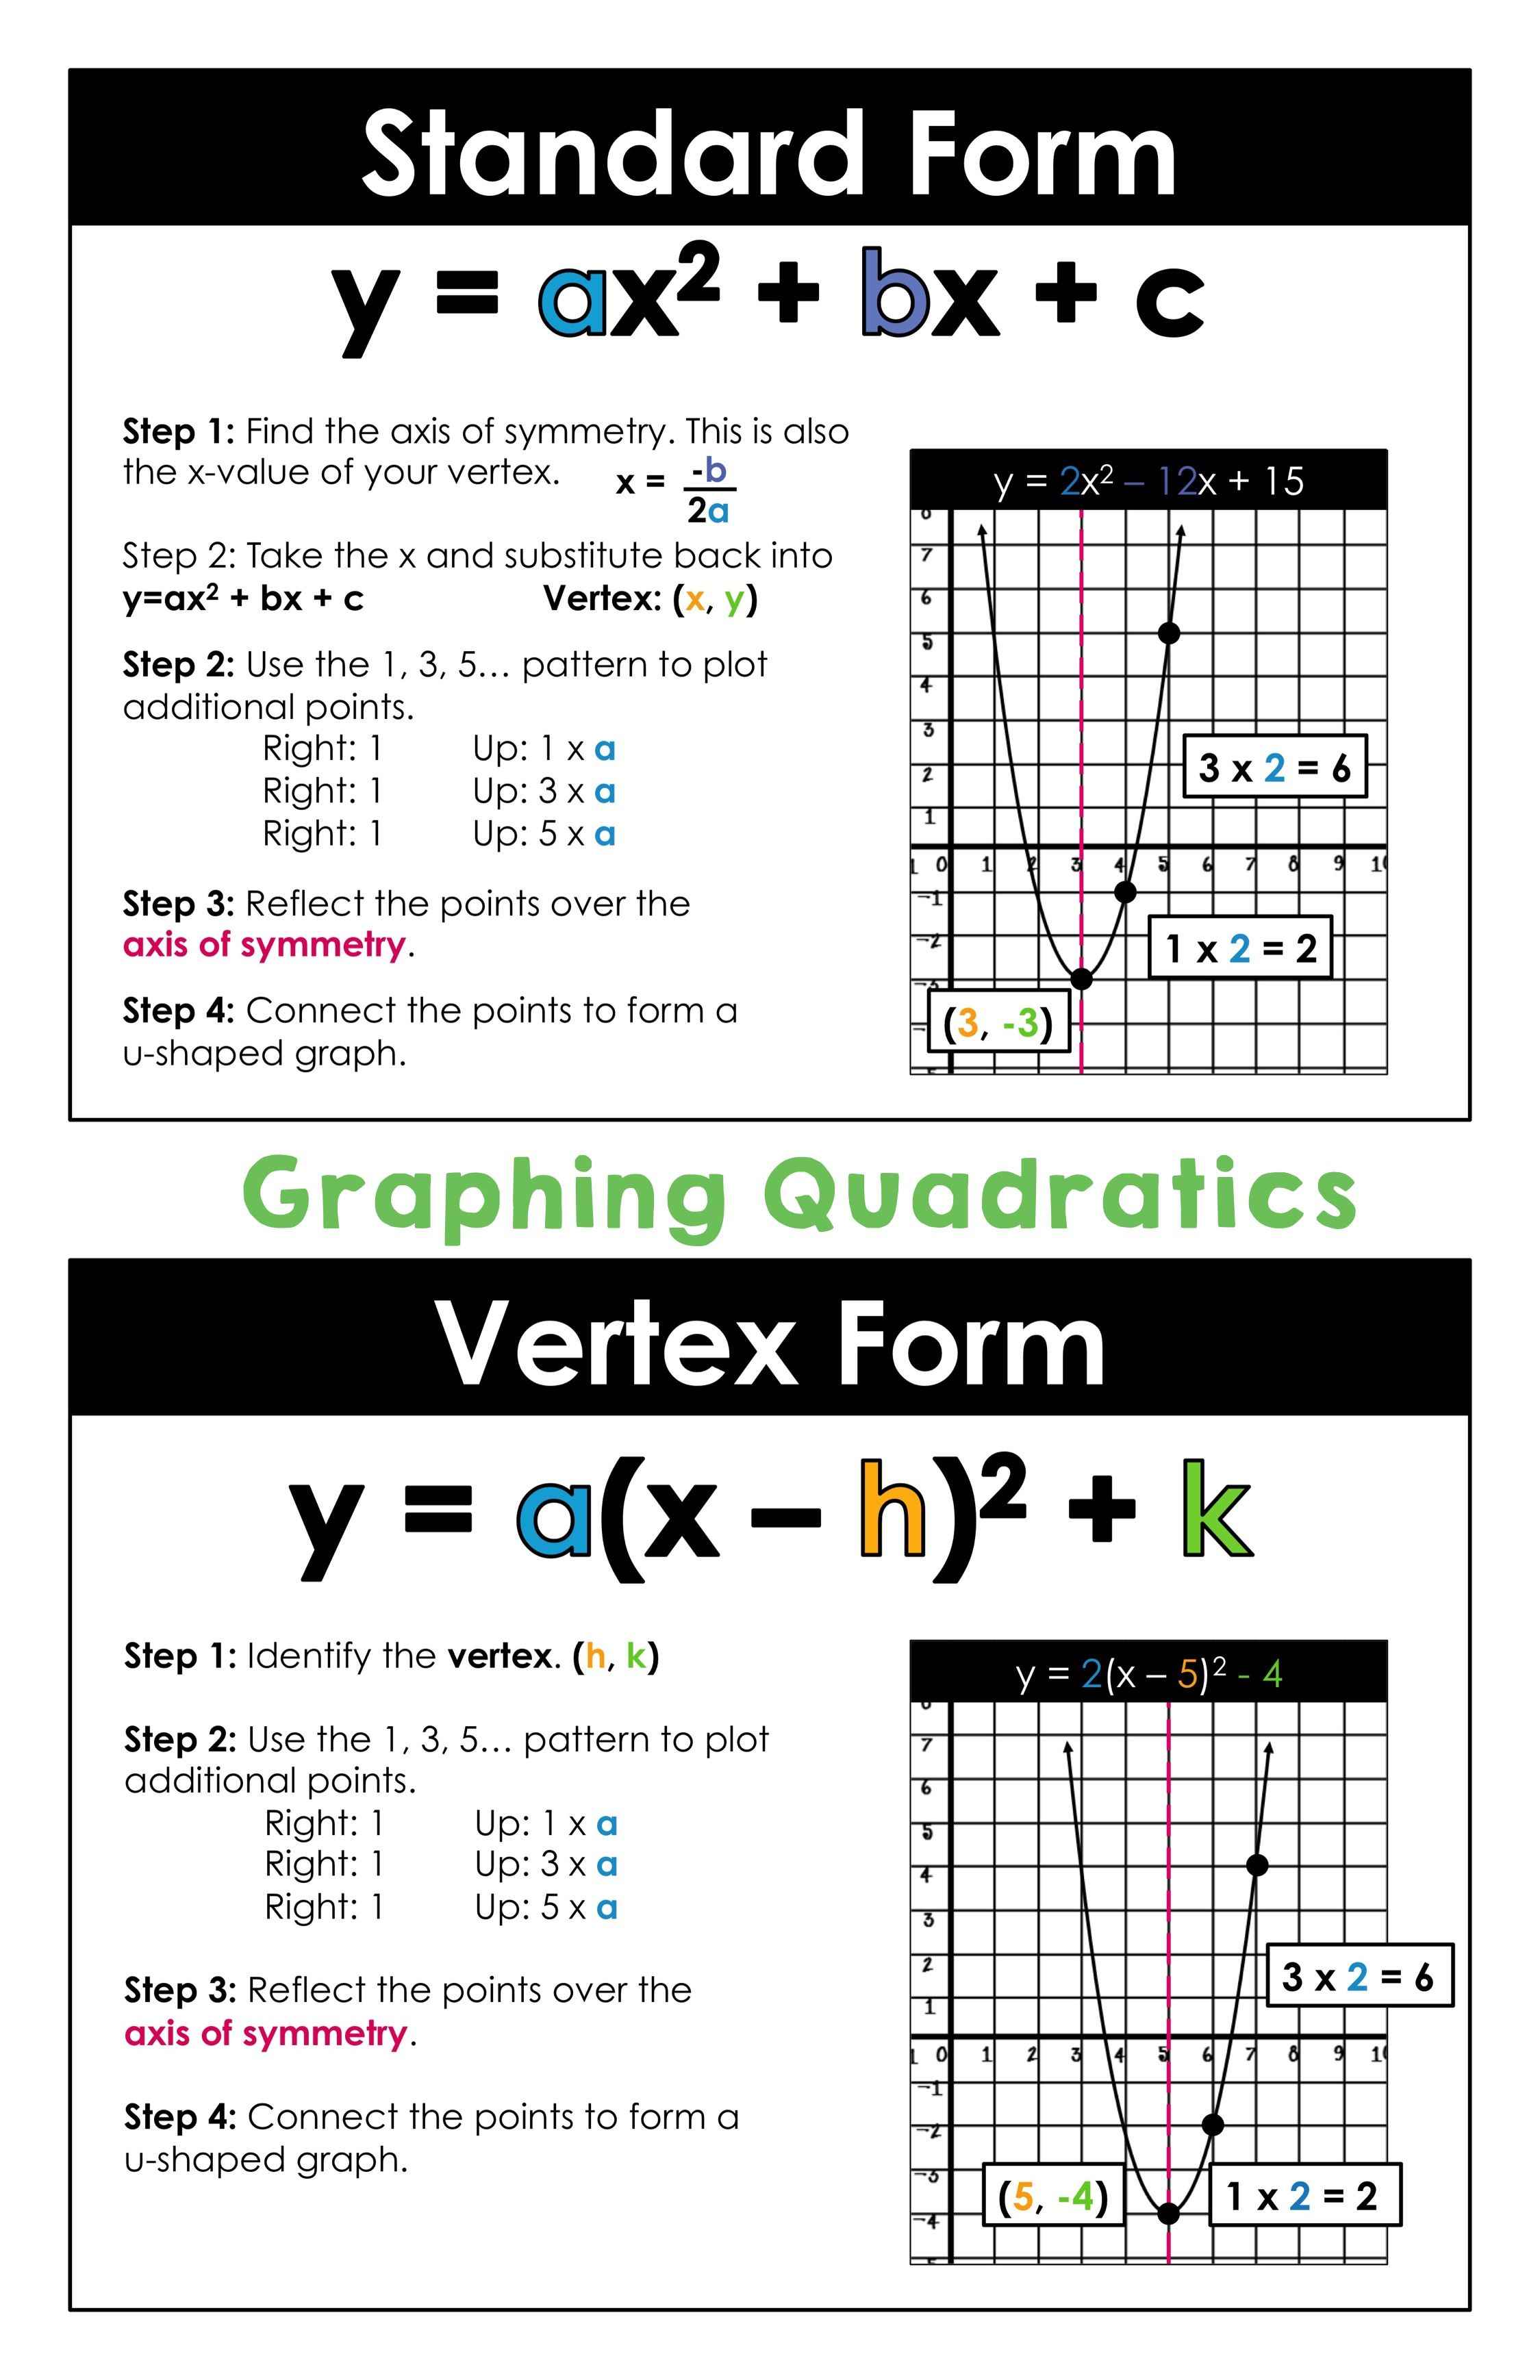 Graphing quadratic functions posters standard form color copies graphing quadratics in standard form and vertex form includes color copied that can be used falaconquin